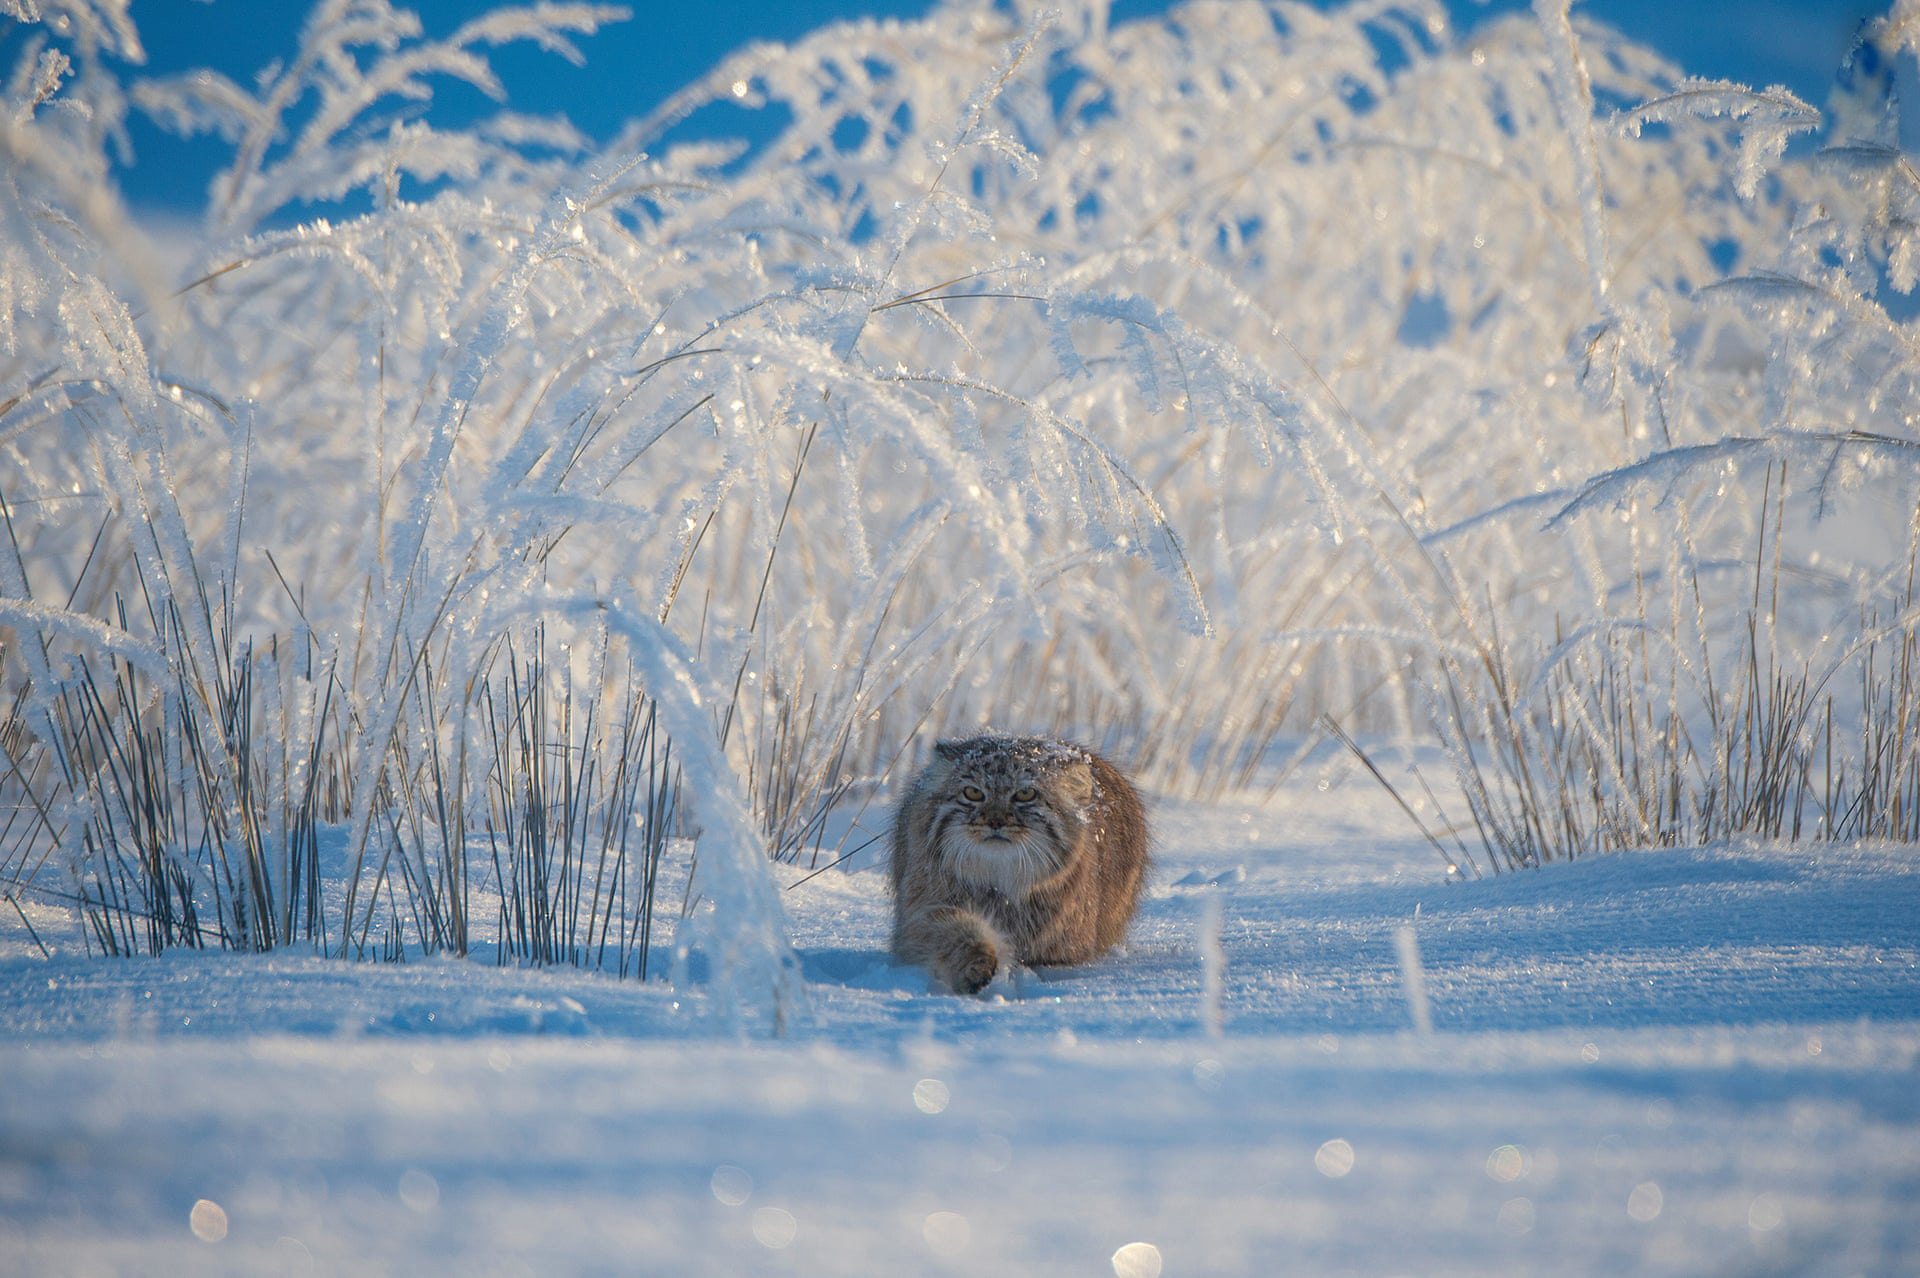 Winter's Tale by Valeriy Maleev (Russia)Maleev spotted this Pallas's cat while it was hunting in the Mongolian grasslands. It was bitterly cold day but the fairytale scene cancelled out the cold. Pallas's cats are no bigger than a domestic cat and they stalk small rodents, birds and occasionally insectsPhotograph: Valeriy Maleev/2019 Wildlife Photographer of the Year